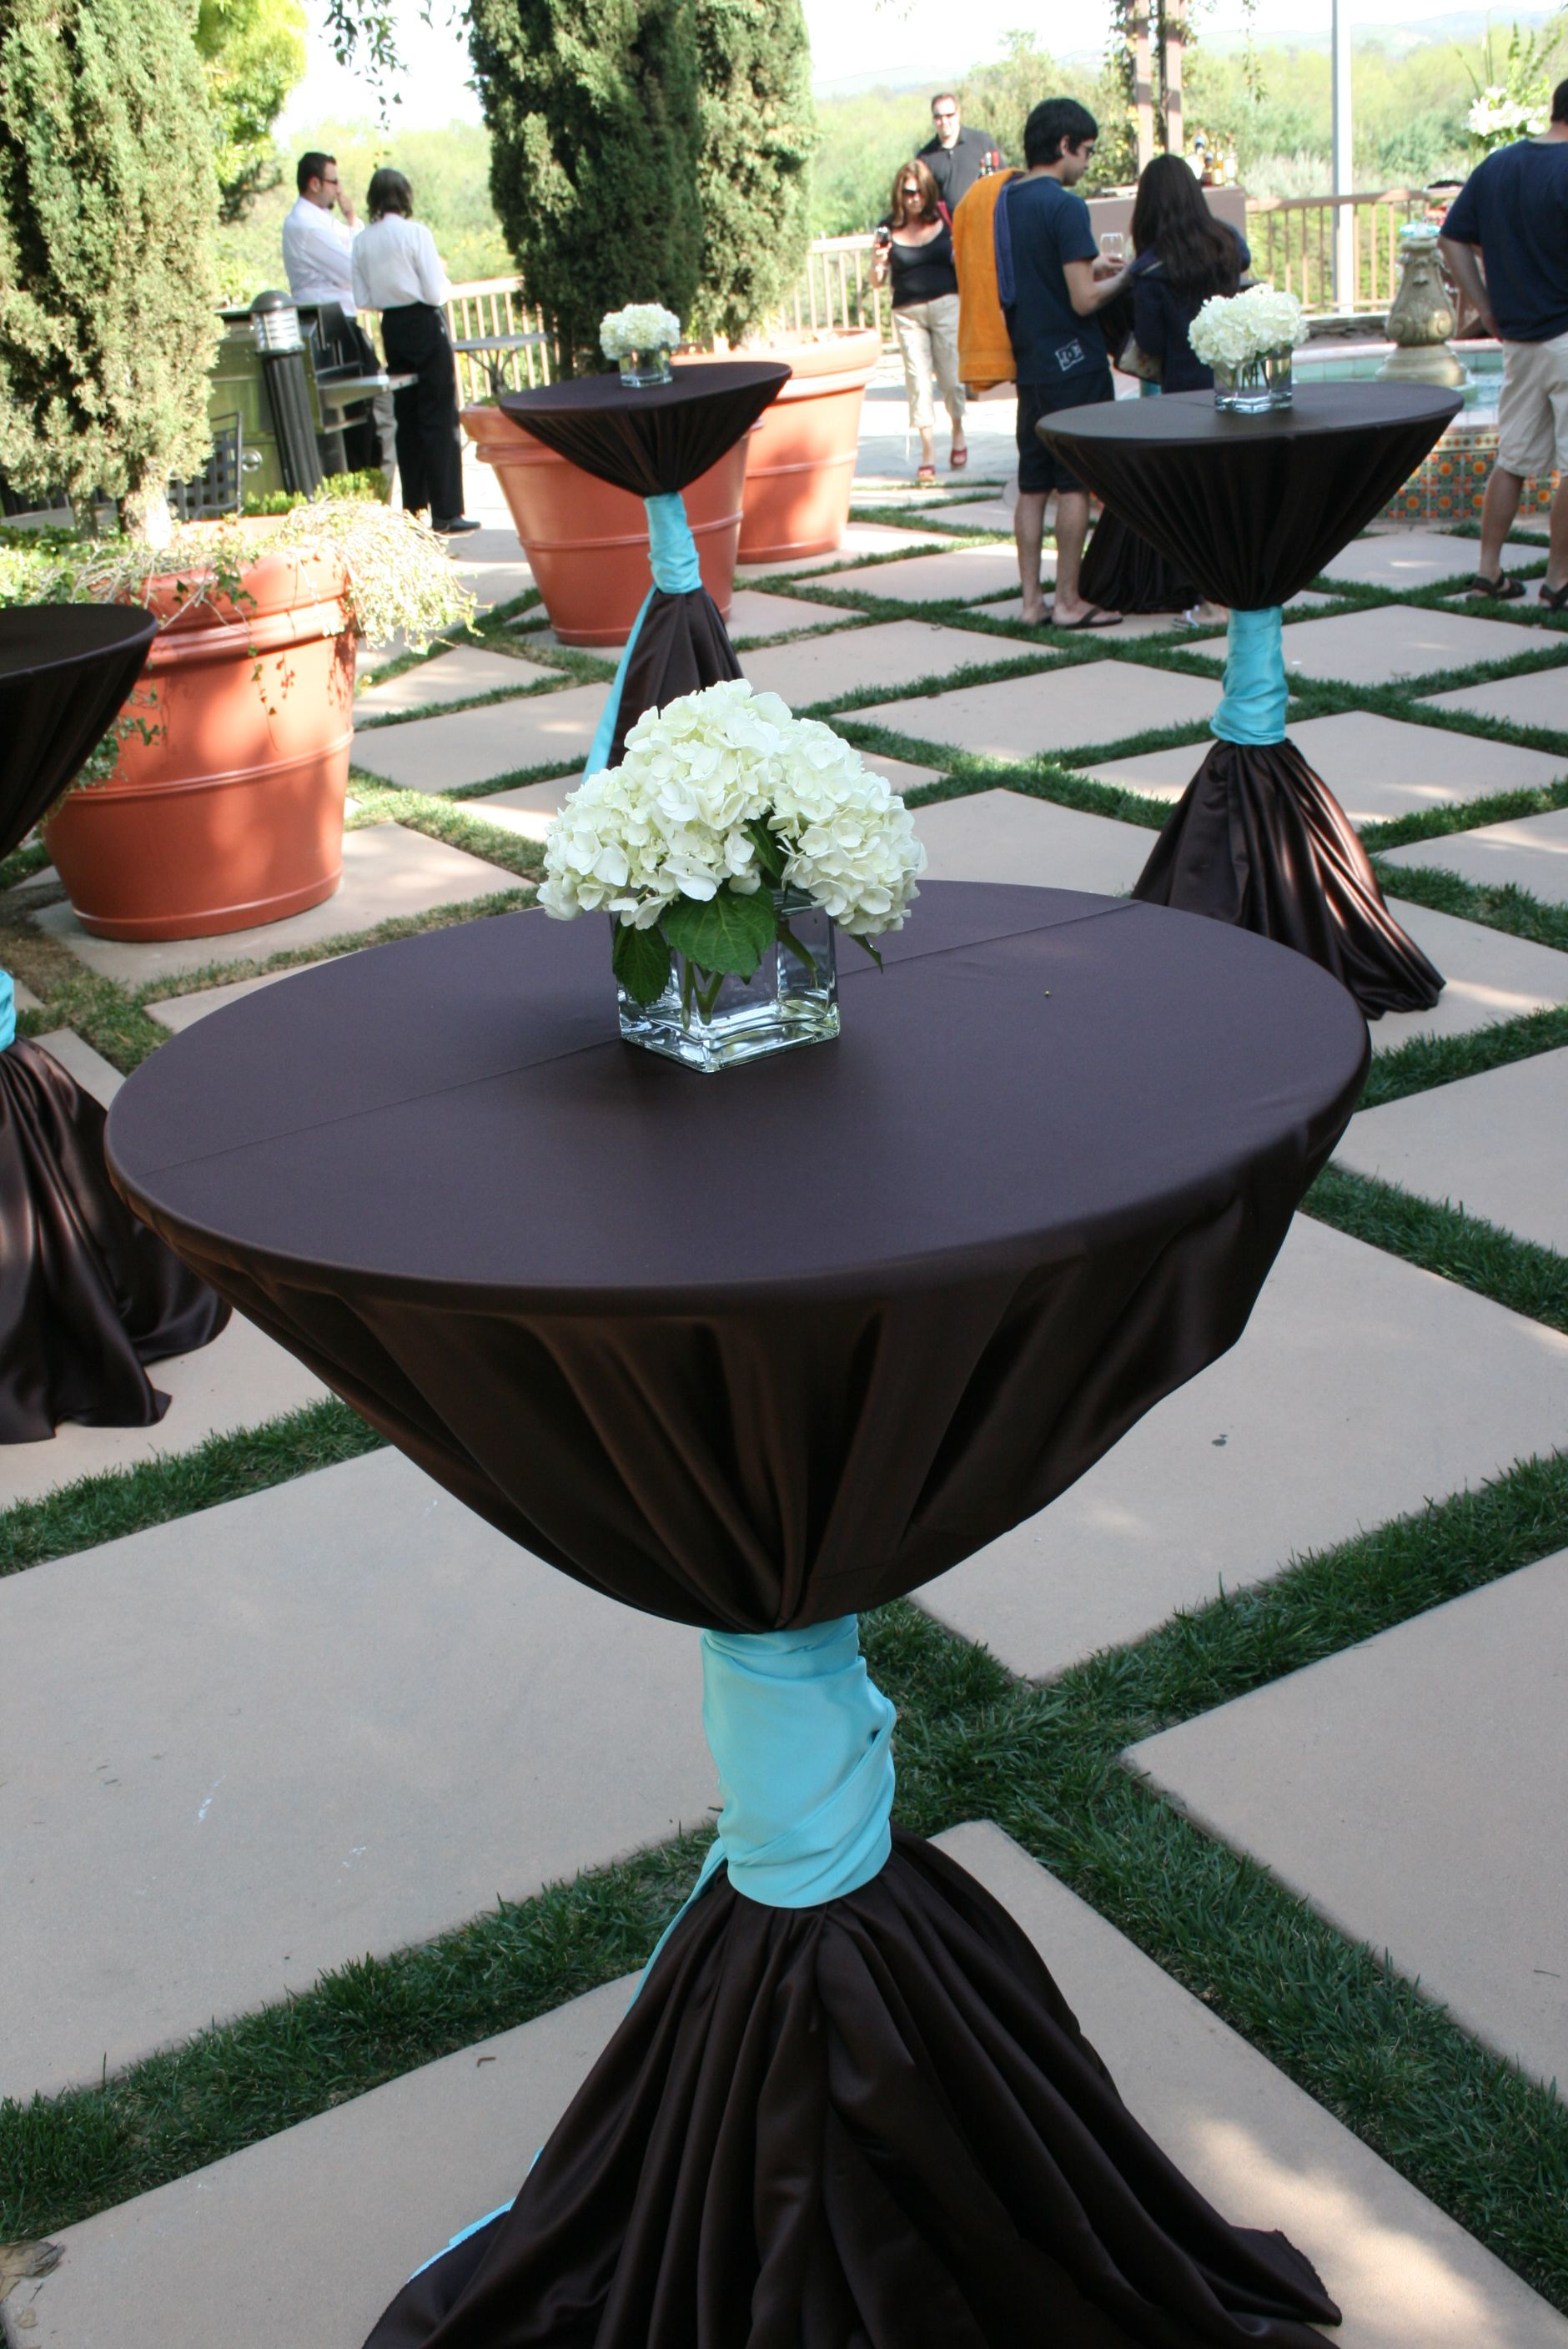 Tall Cocktail Tables With Chocolate Satin Table Cloths And Turquoise Satin  Sashes Tied In The Middle